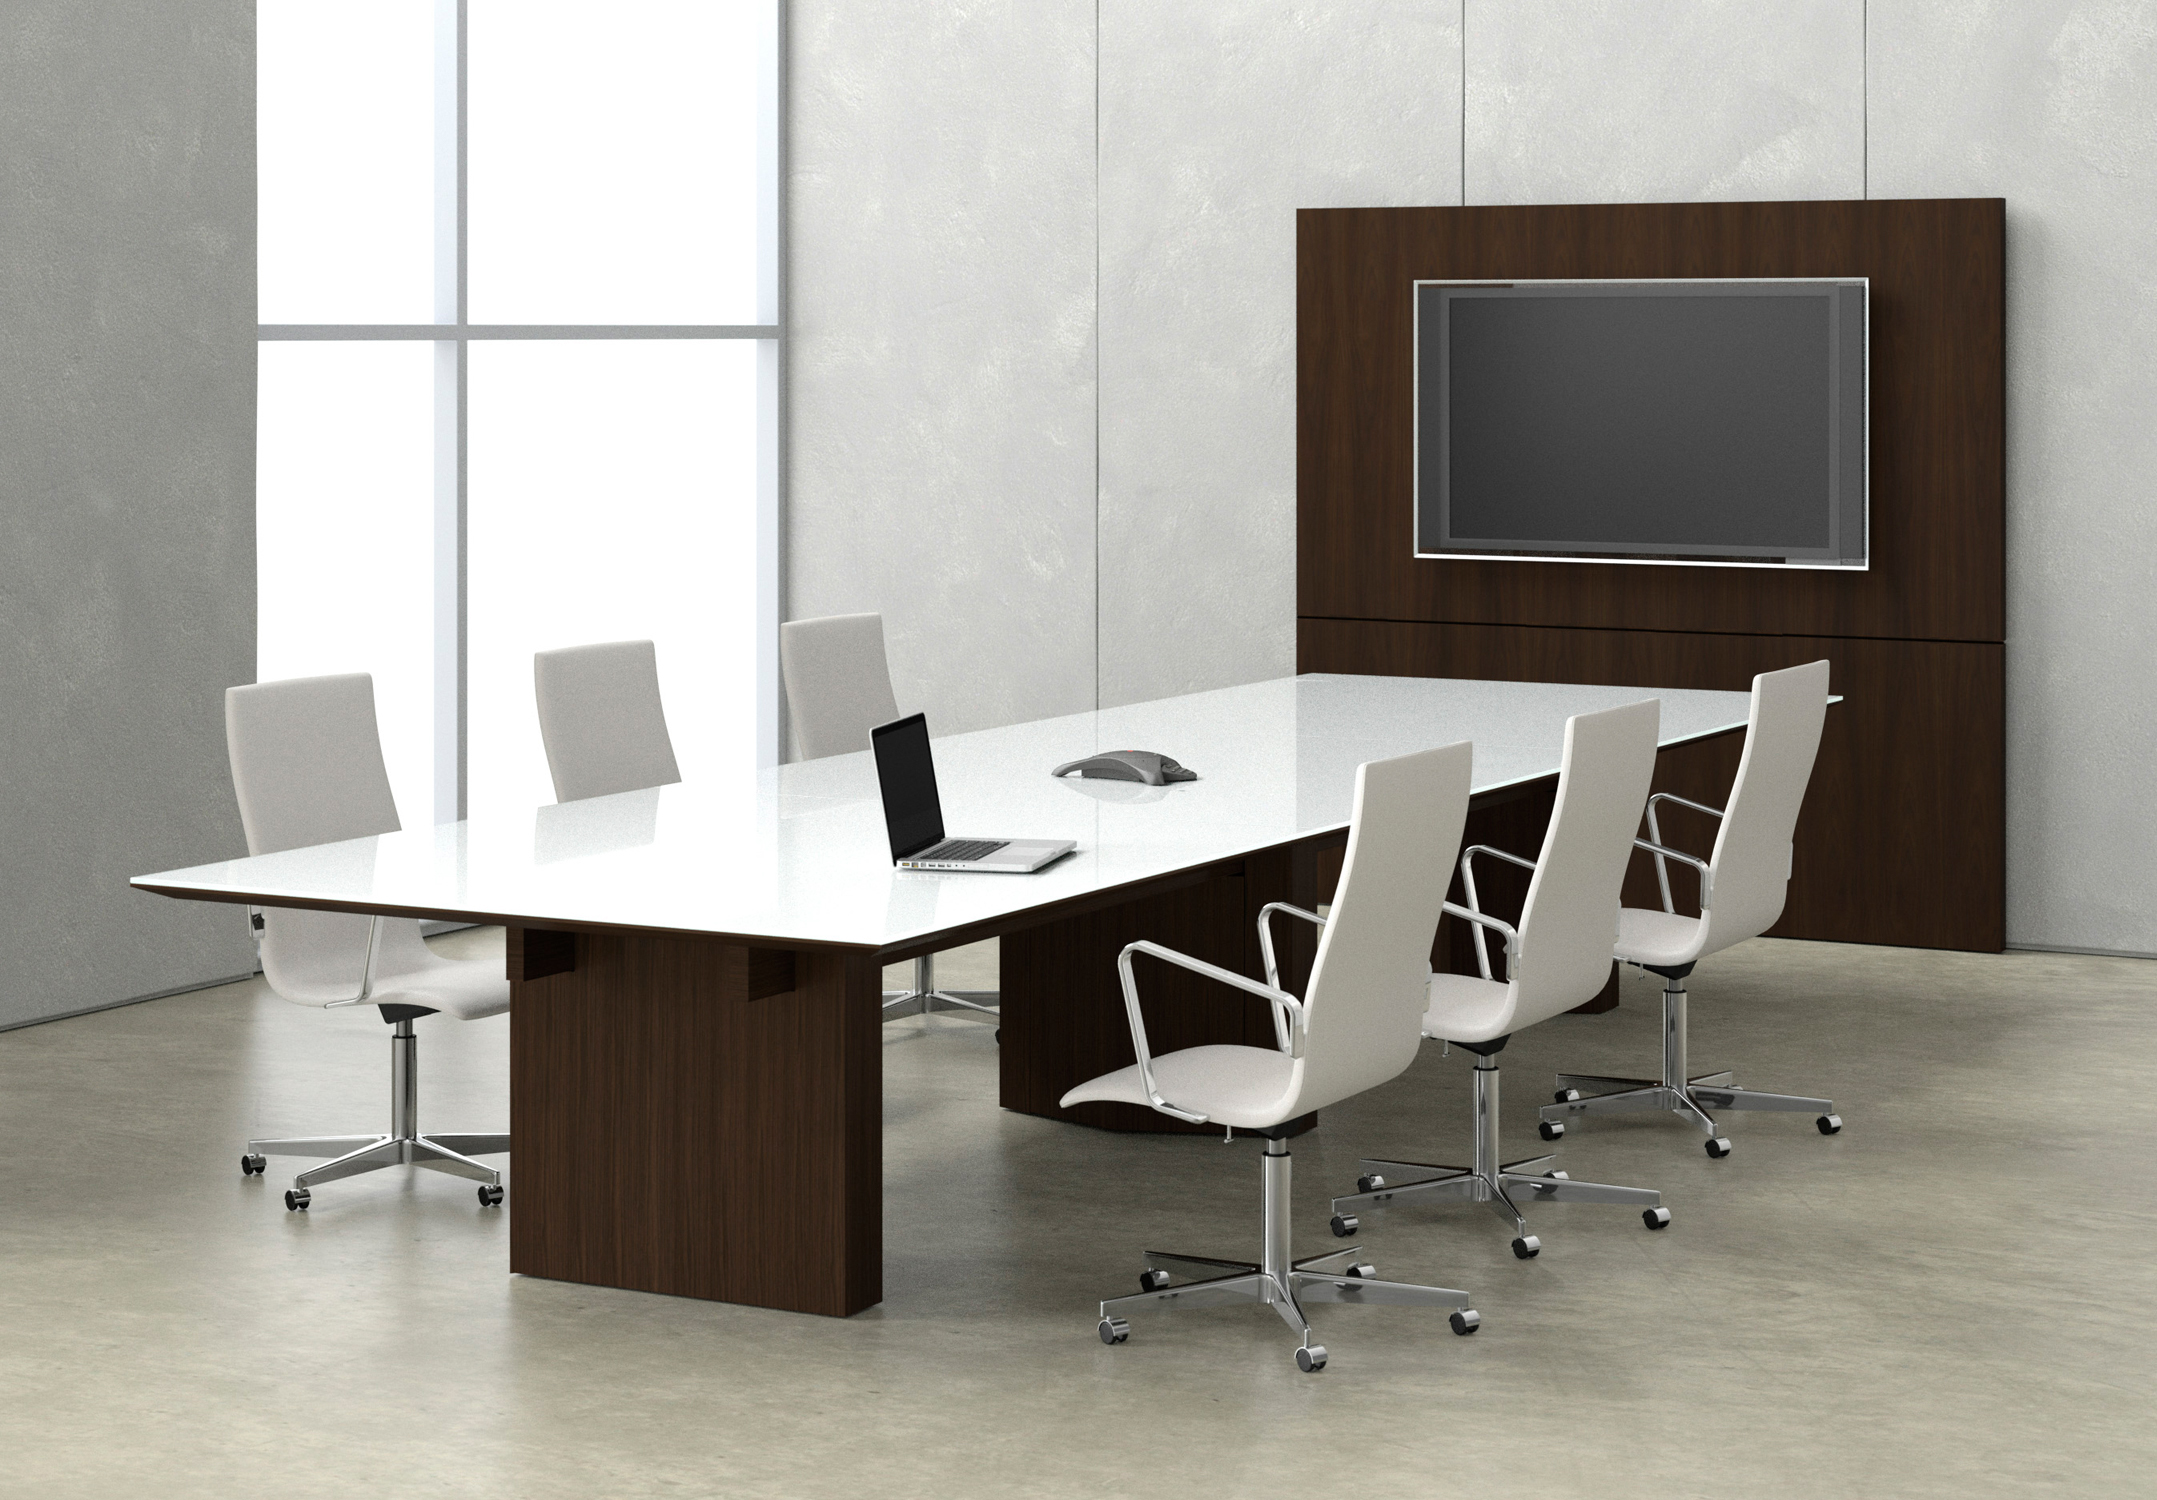 Media Conference Table House Designer Today - Multimedia conference table